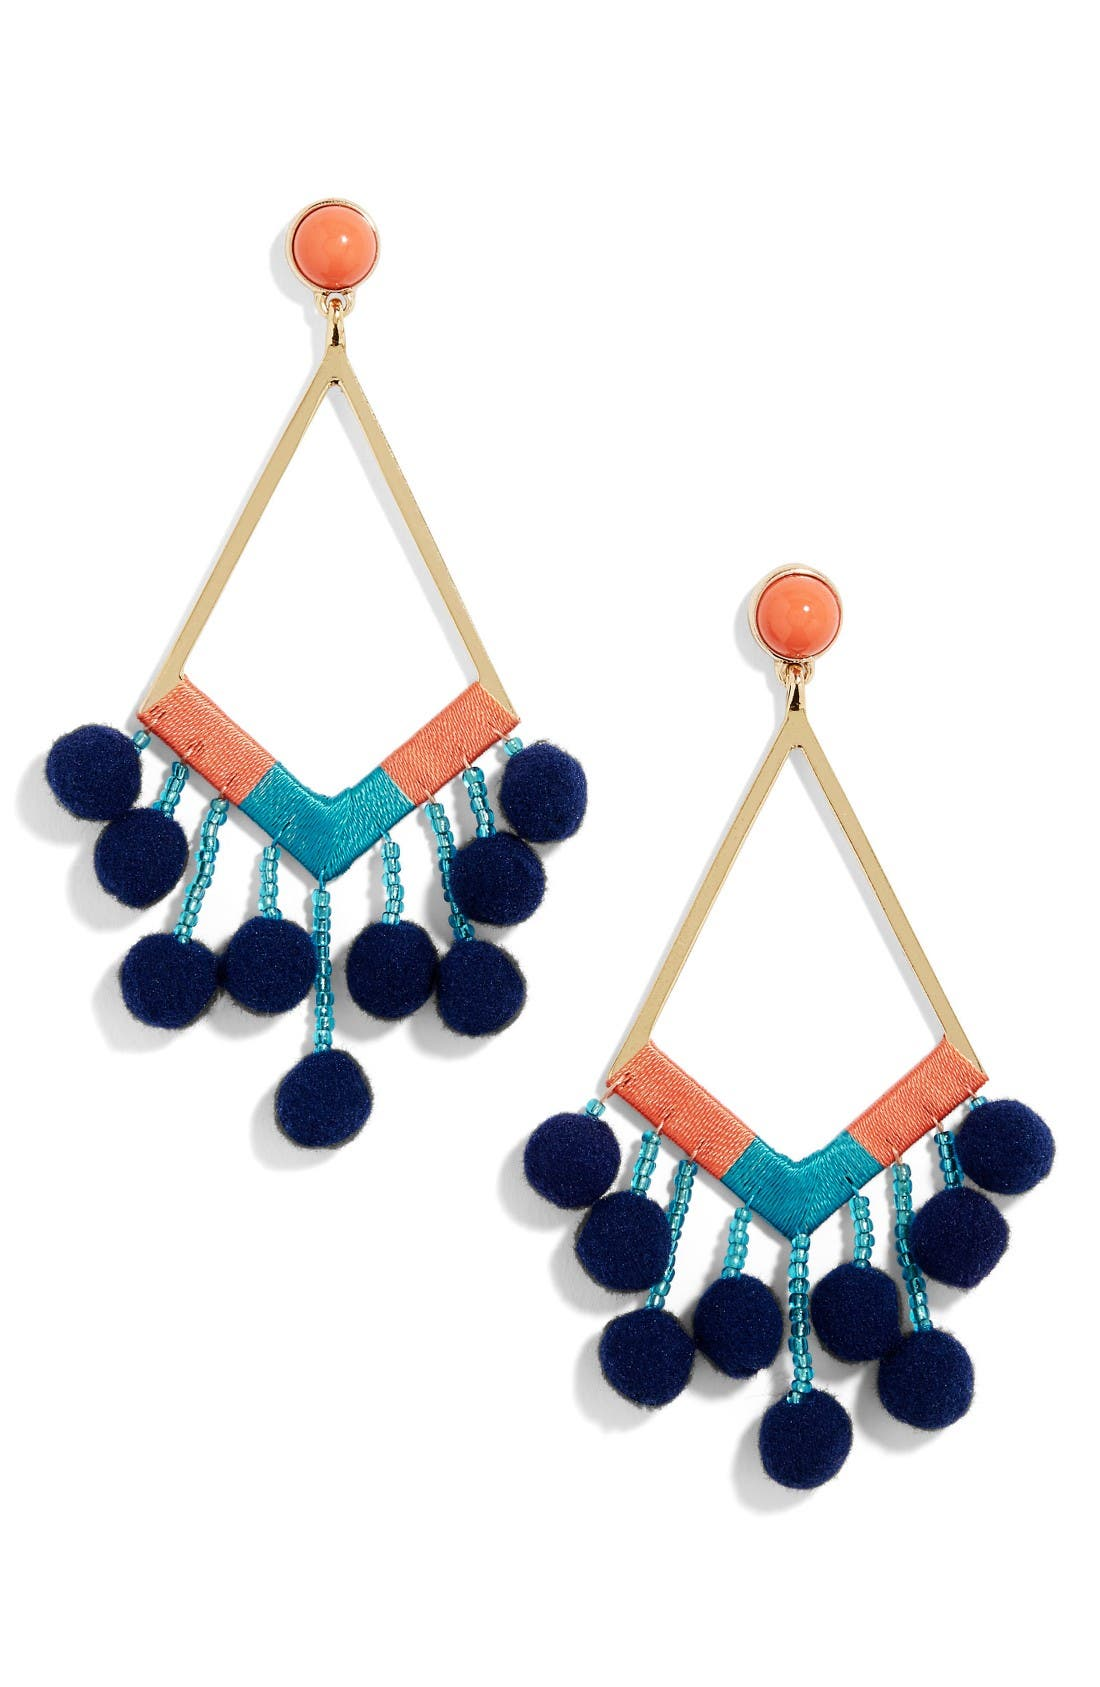 Geo Drop Earrings,                         Main,                         color, Orange